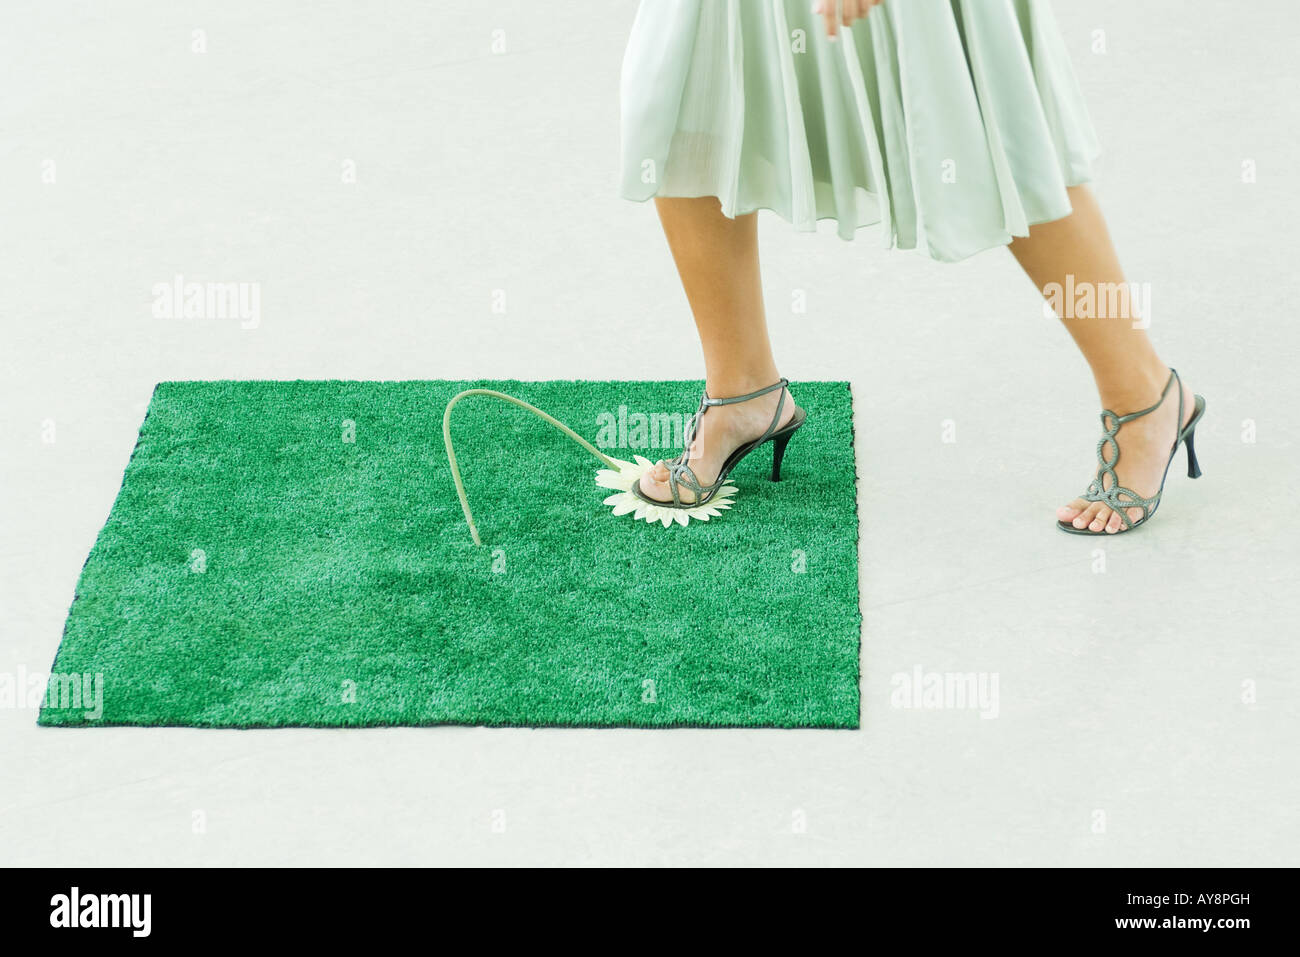 Woman stepping on artificial turf, crushing gerbera daisy with foot, cropped view - Stock Image